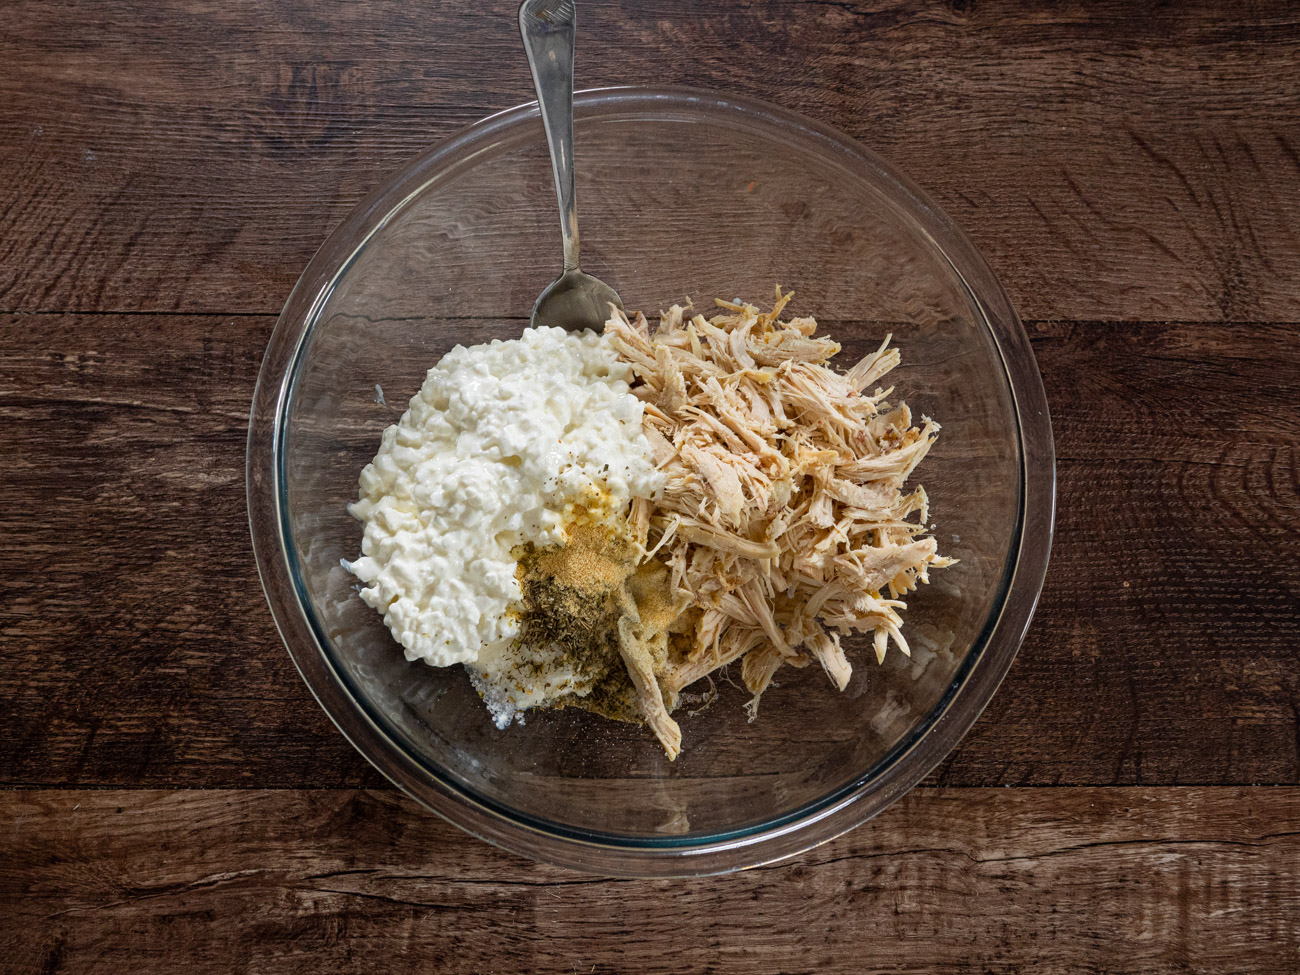 Combine shredded chicken, cottage cheese, salt, onion powder, garlic powder, and Italian seasoning in a large bowl.